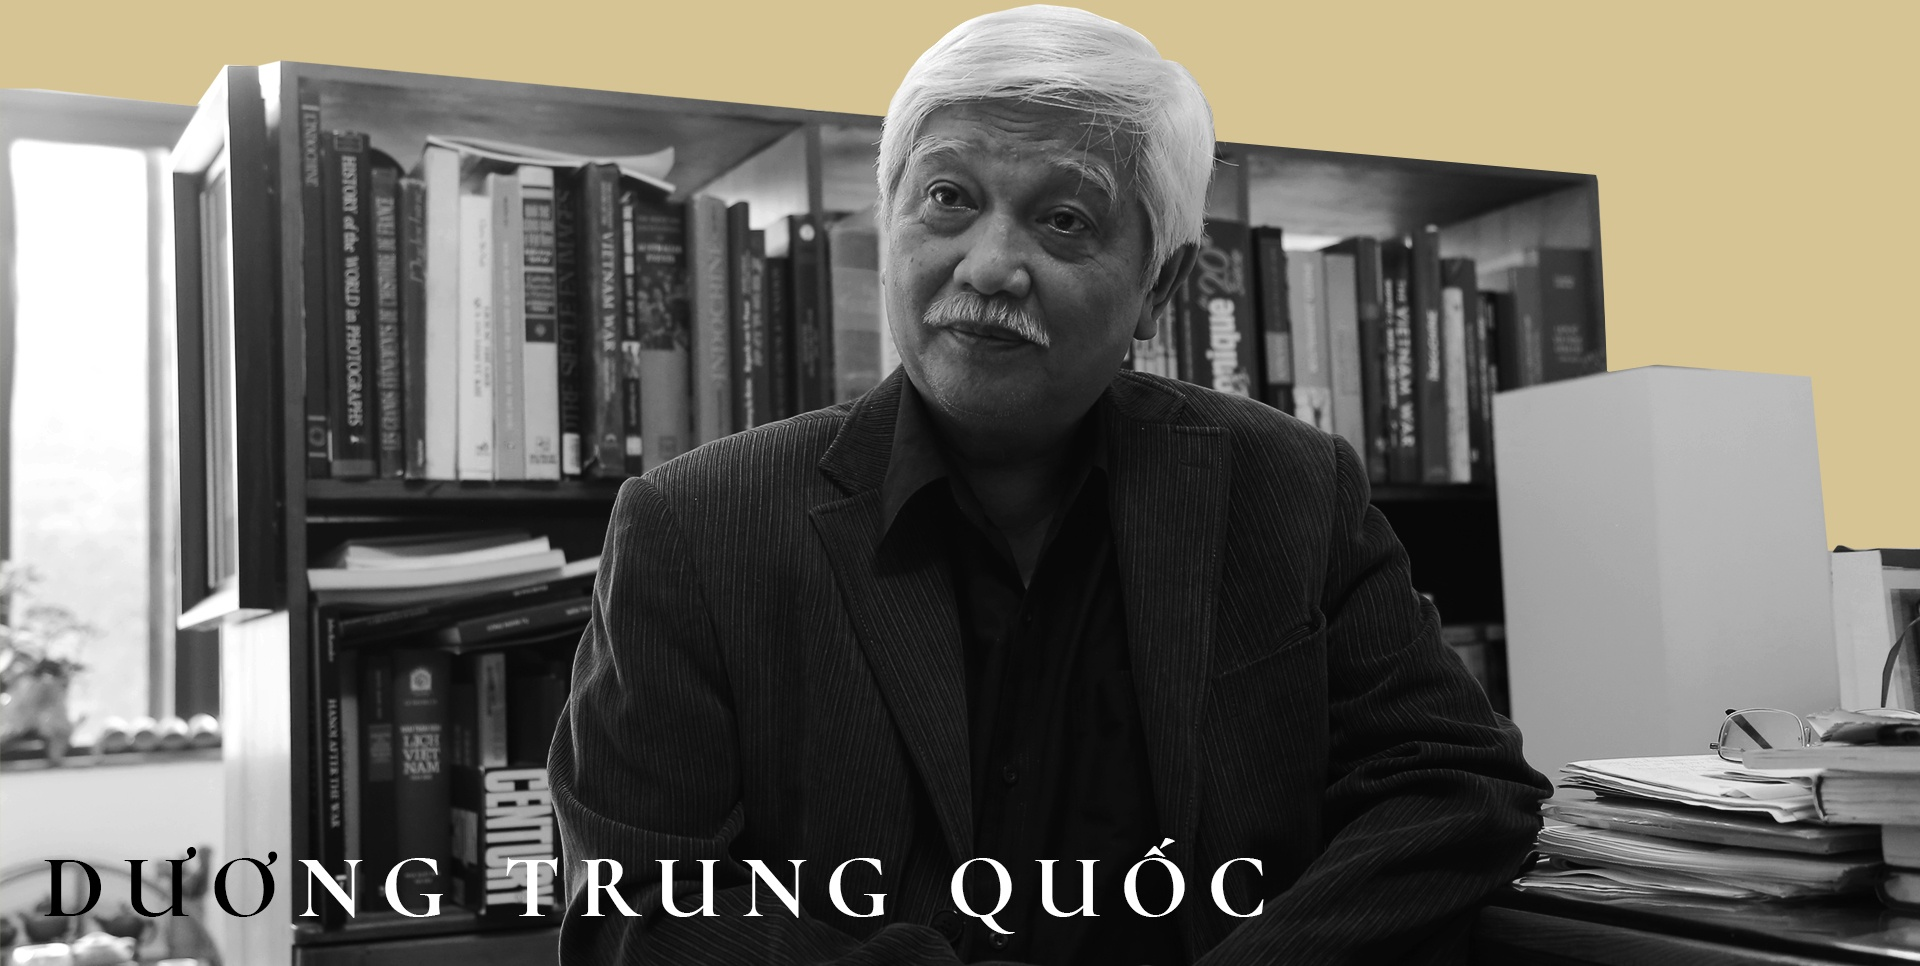 Nha su hoc Duong Trung Quoc: 'Gioi tre Viet hay mang sach ben minh' hinh anh 8